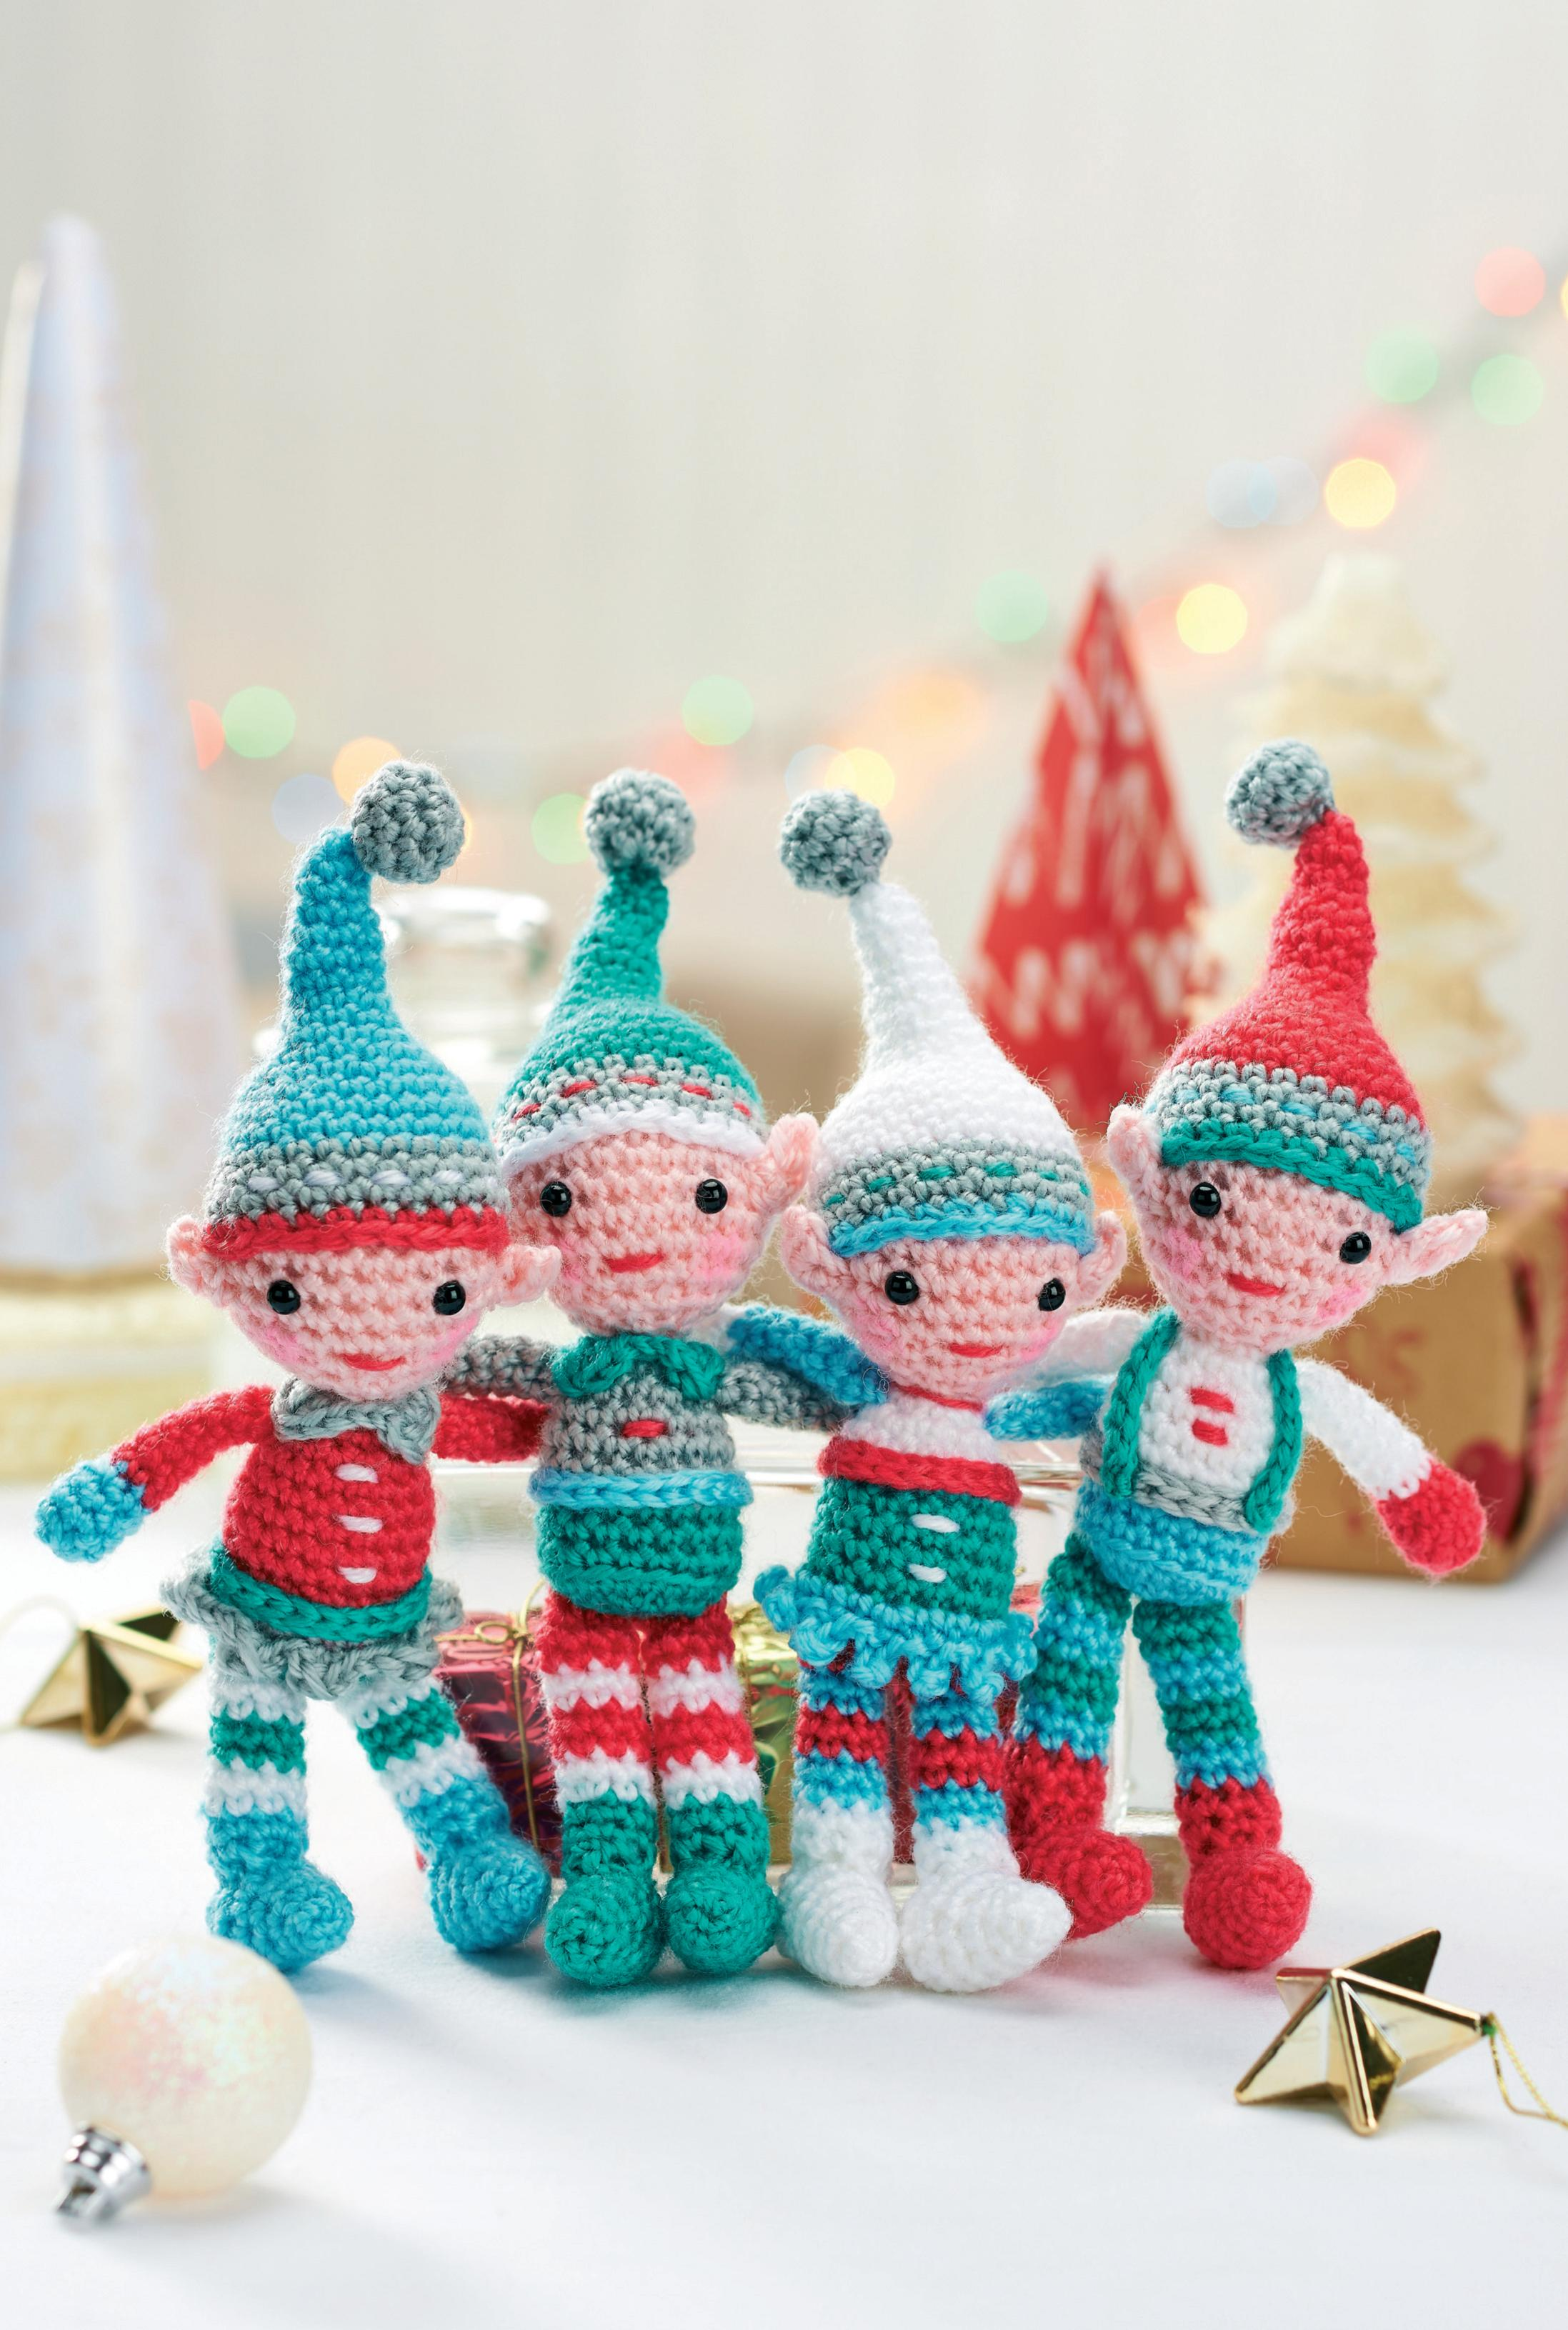 A family of crocheted Christmas elves Crochet Pattern